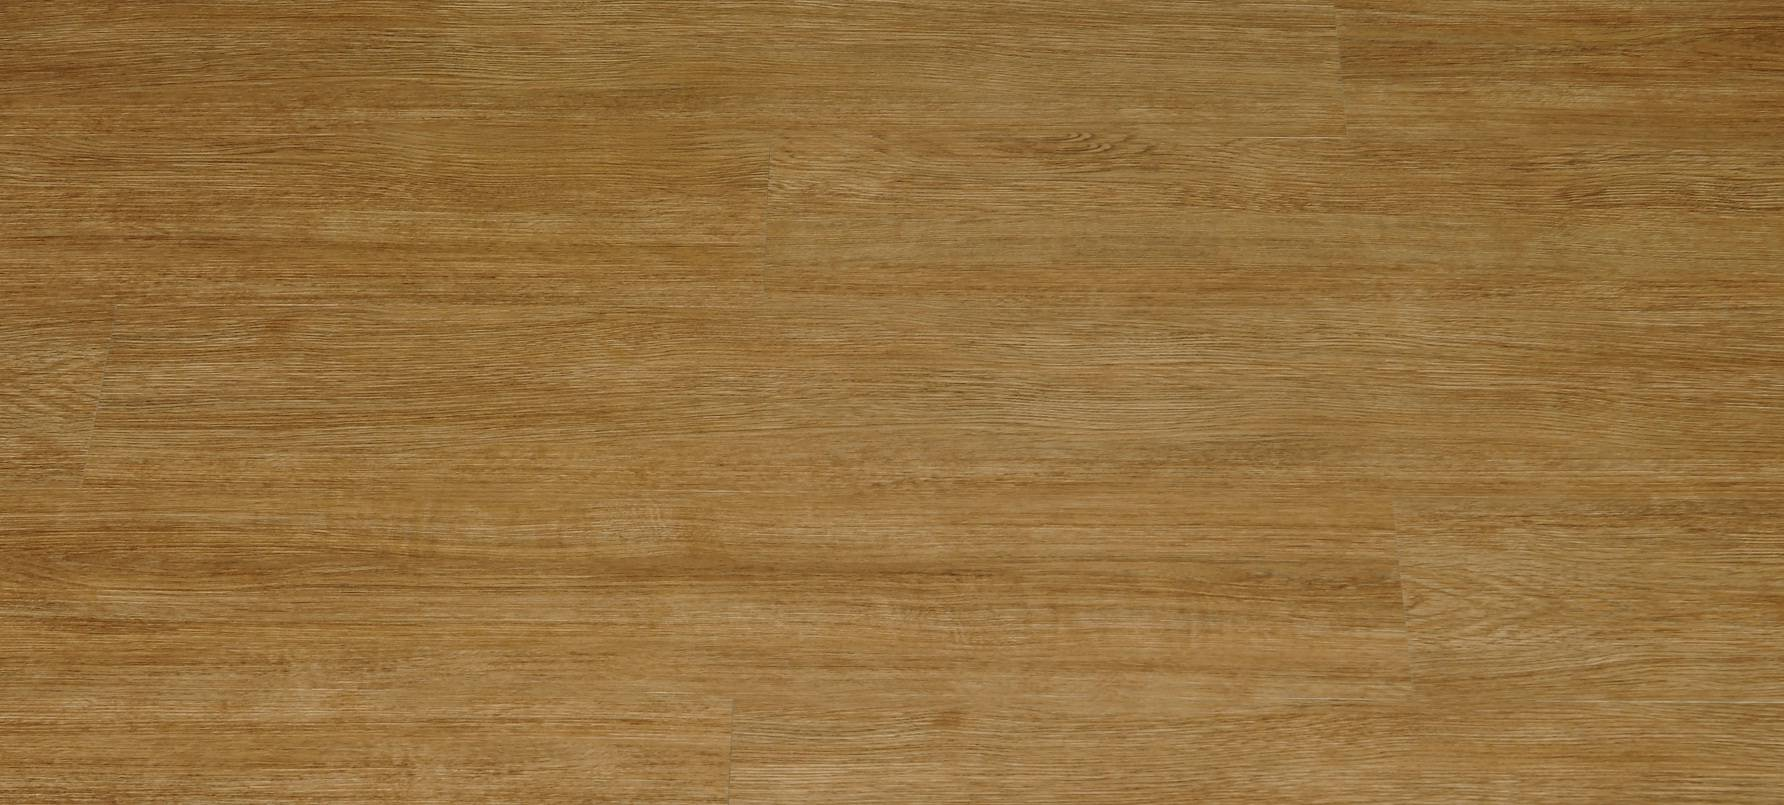 Unideco Luxury Vinyl Tile 6073